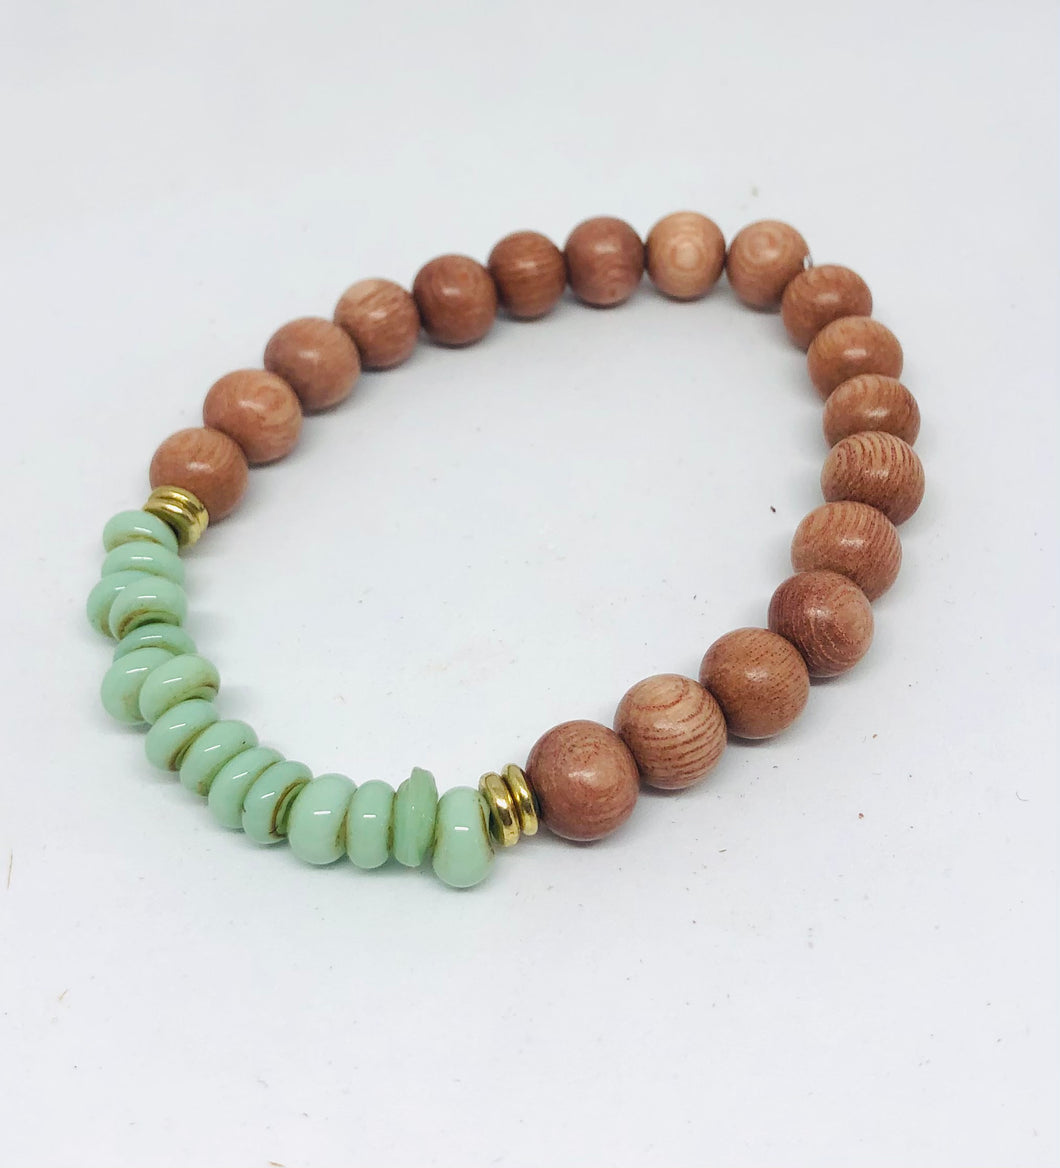 8mm Mint Java Glass and Rosewood Diffuser Bracelet